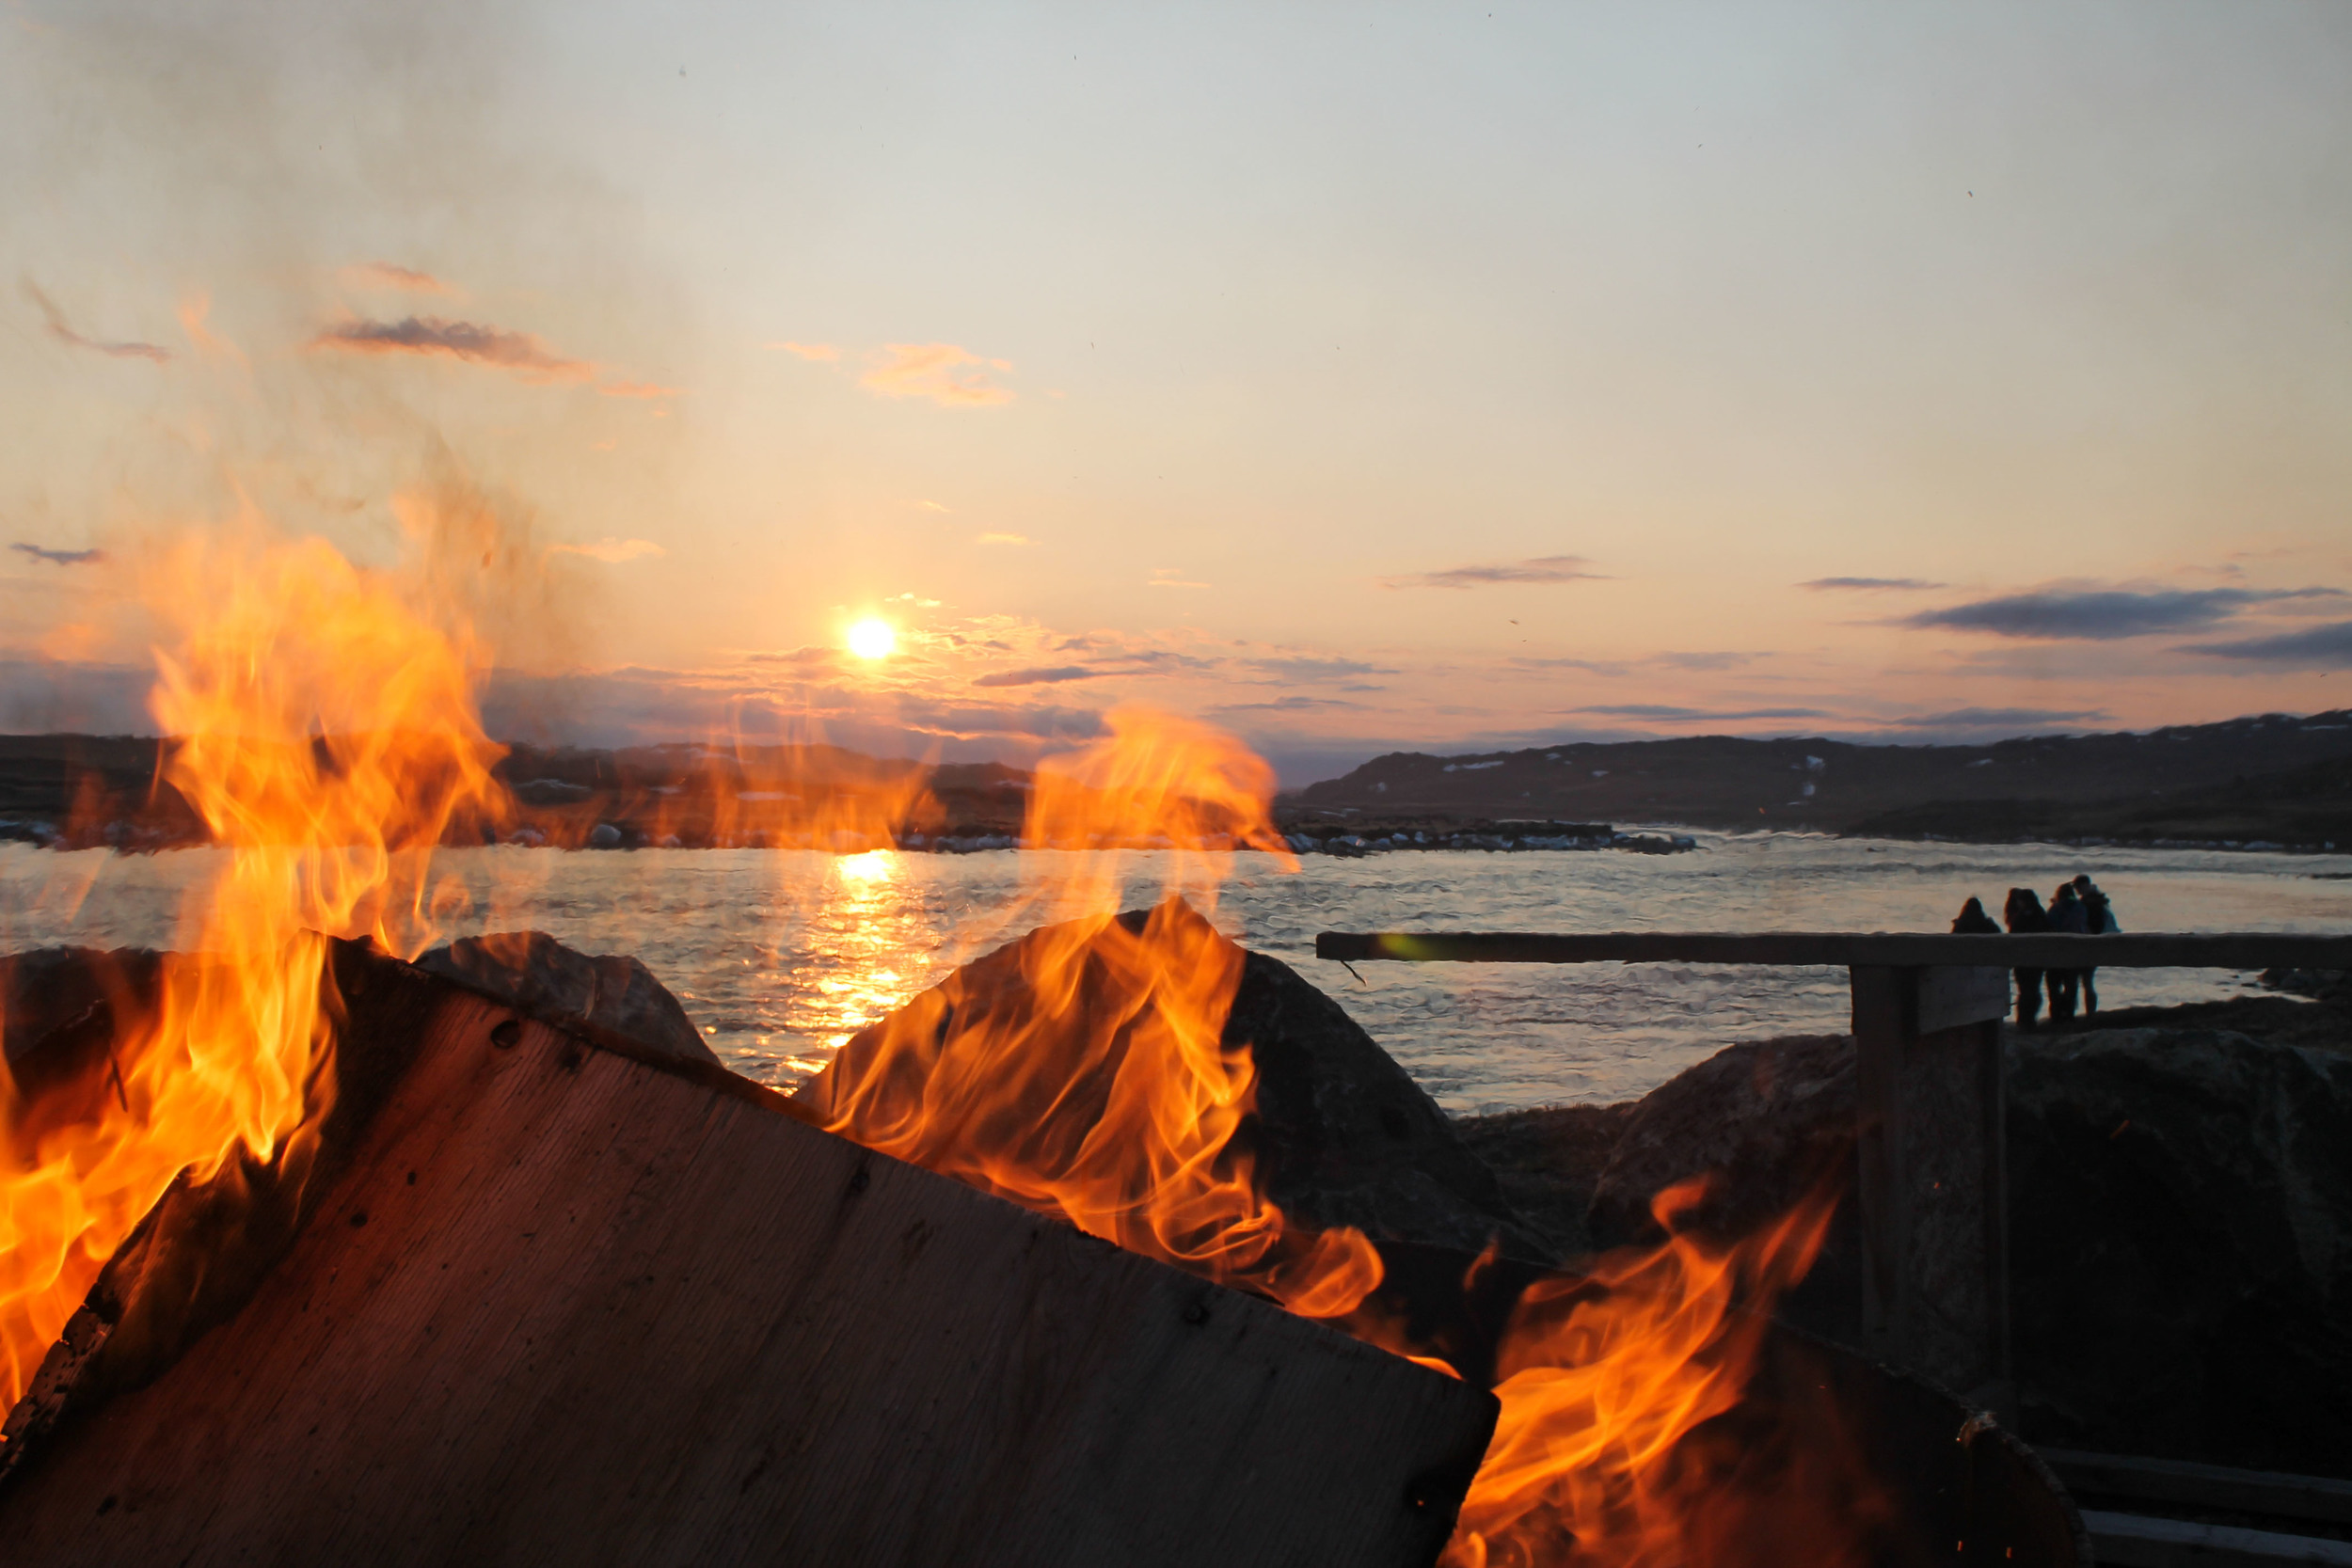 Bonfire blazing before the sun dipped (briefly) below the horizon.